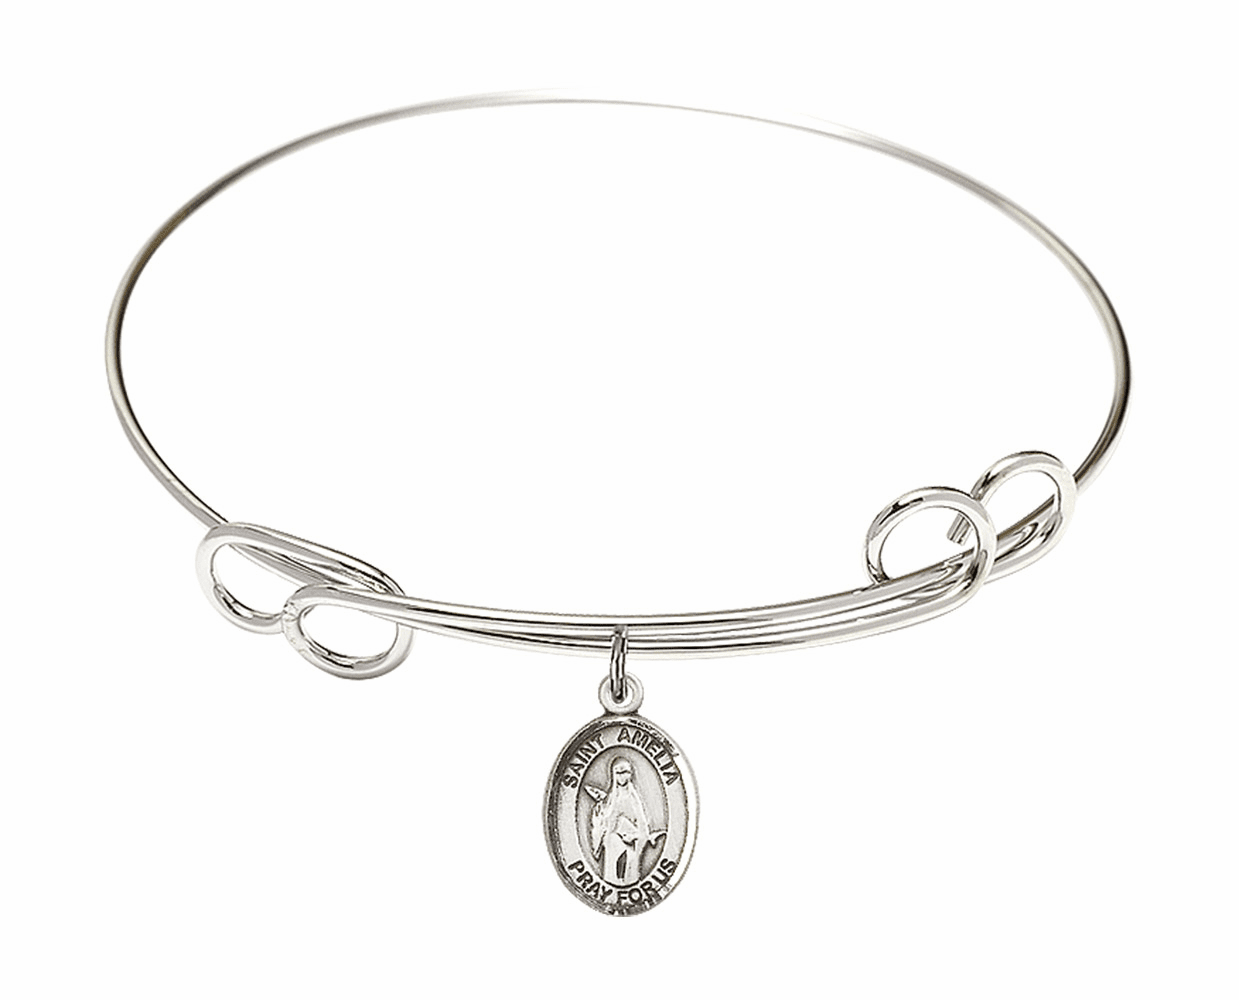 St Amelia Round Loop Bangle Charm Bracelet by Bliss